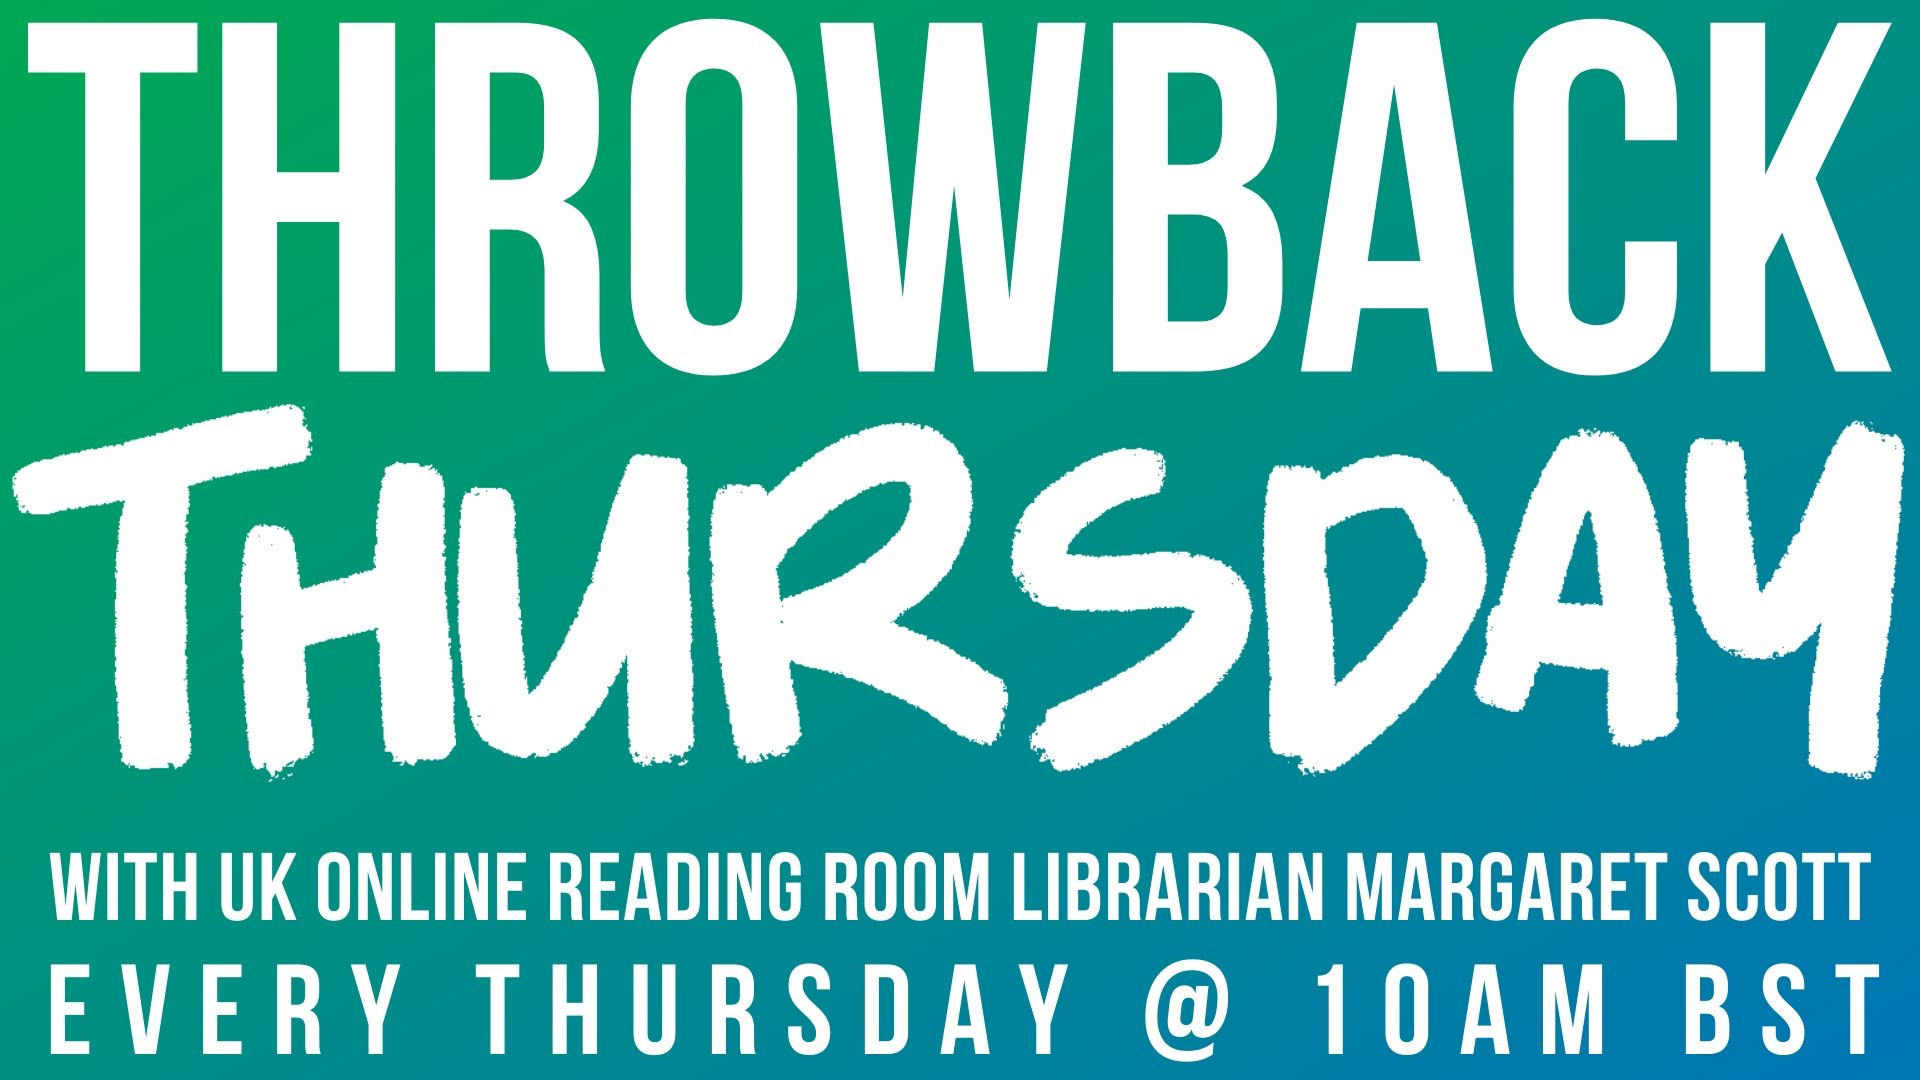 Throwback Thursday with UK Online Reading Room Librarian Margaret Scott, every Thursday at 10 am BST